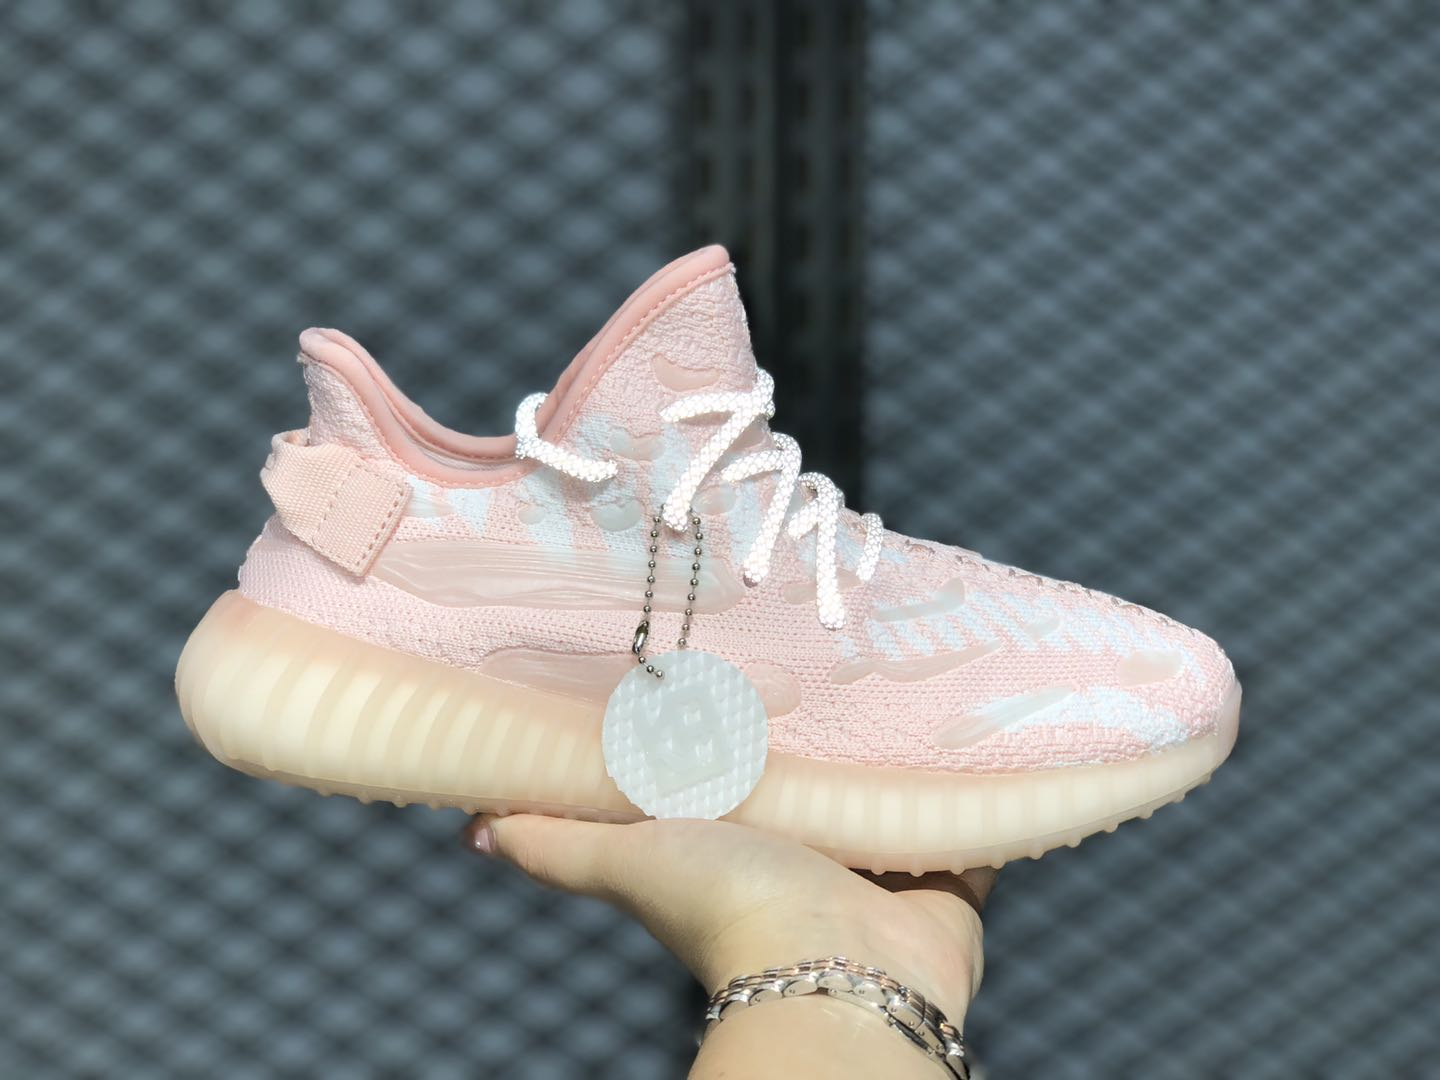 New Arrival Adidas Yeezy Boost 350 V3